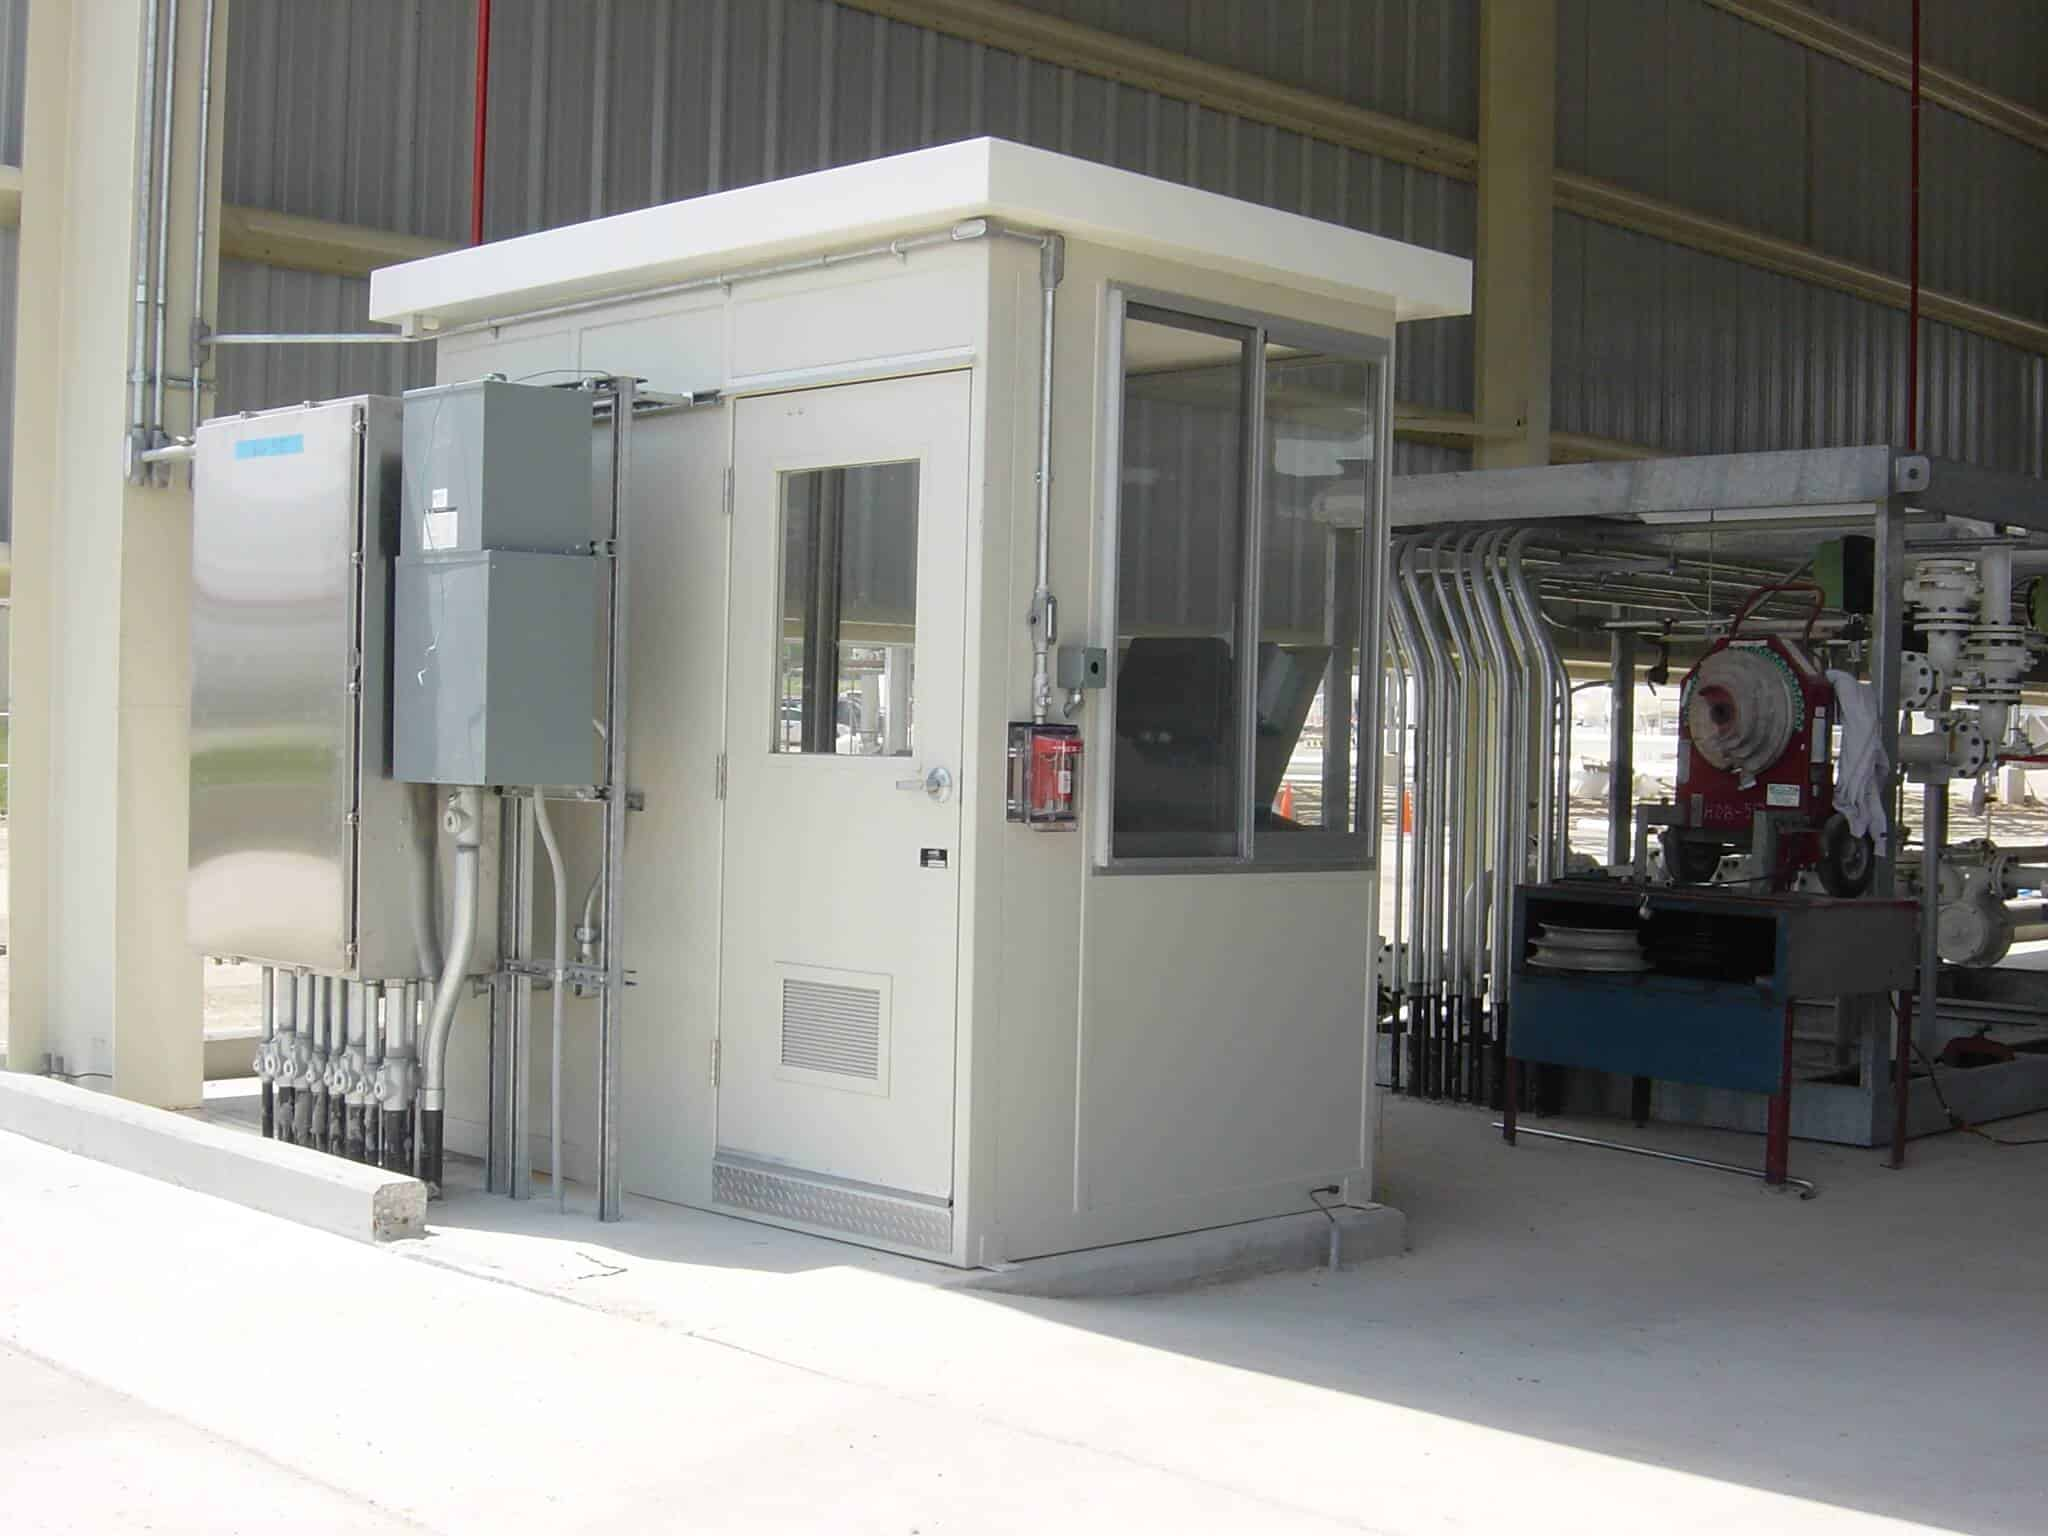 Manufacturing Supplier Development Outdoor Equipment Enclosures Gallery Porta King Building